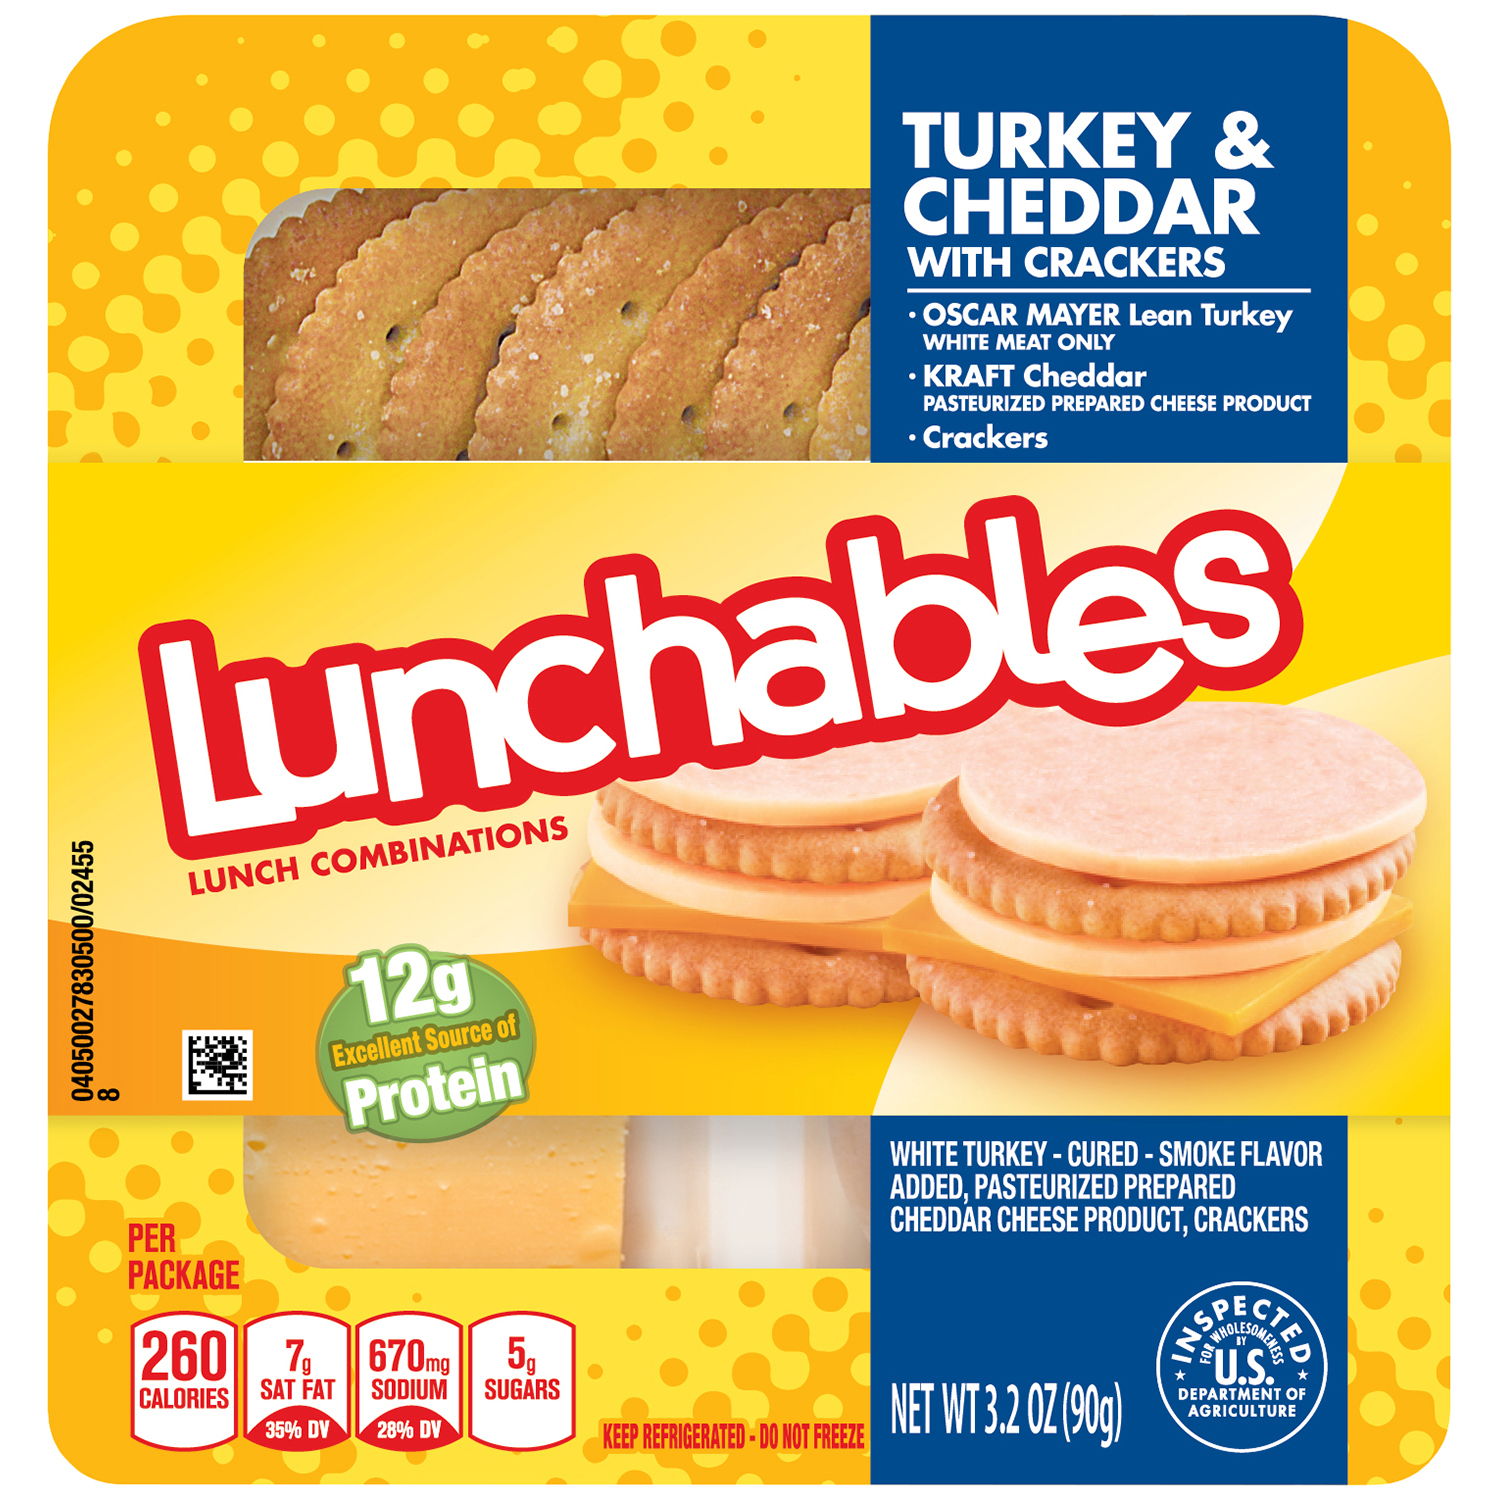 Lunchables Turkey & Cheddar with Crackers Convenience Meal